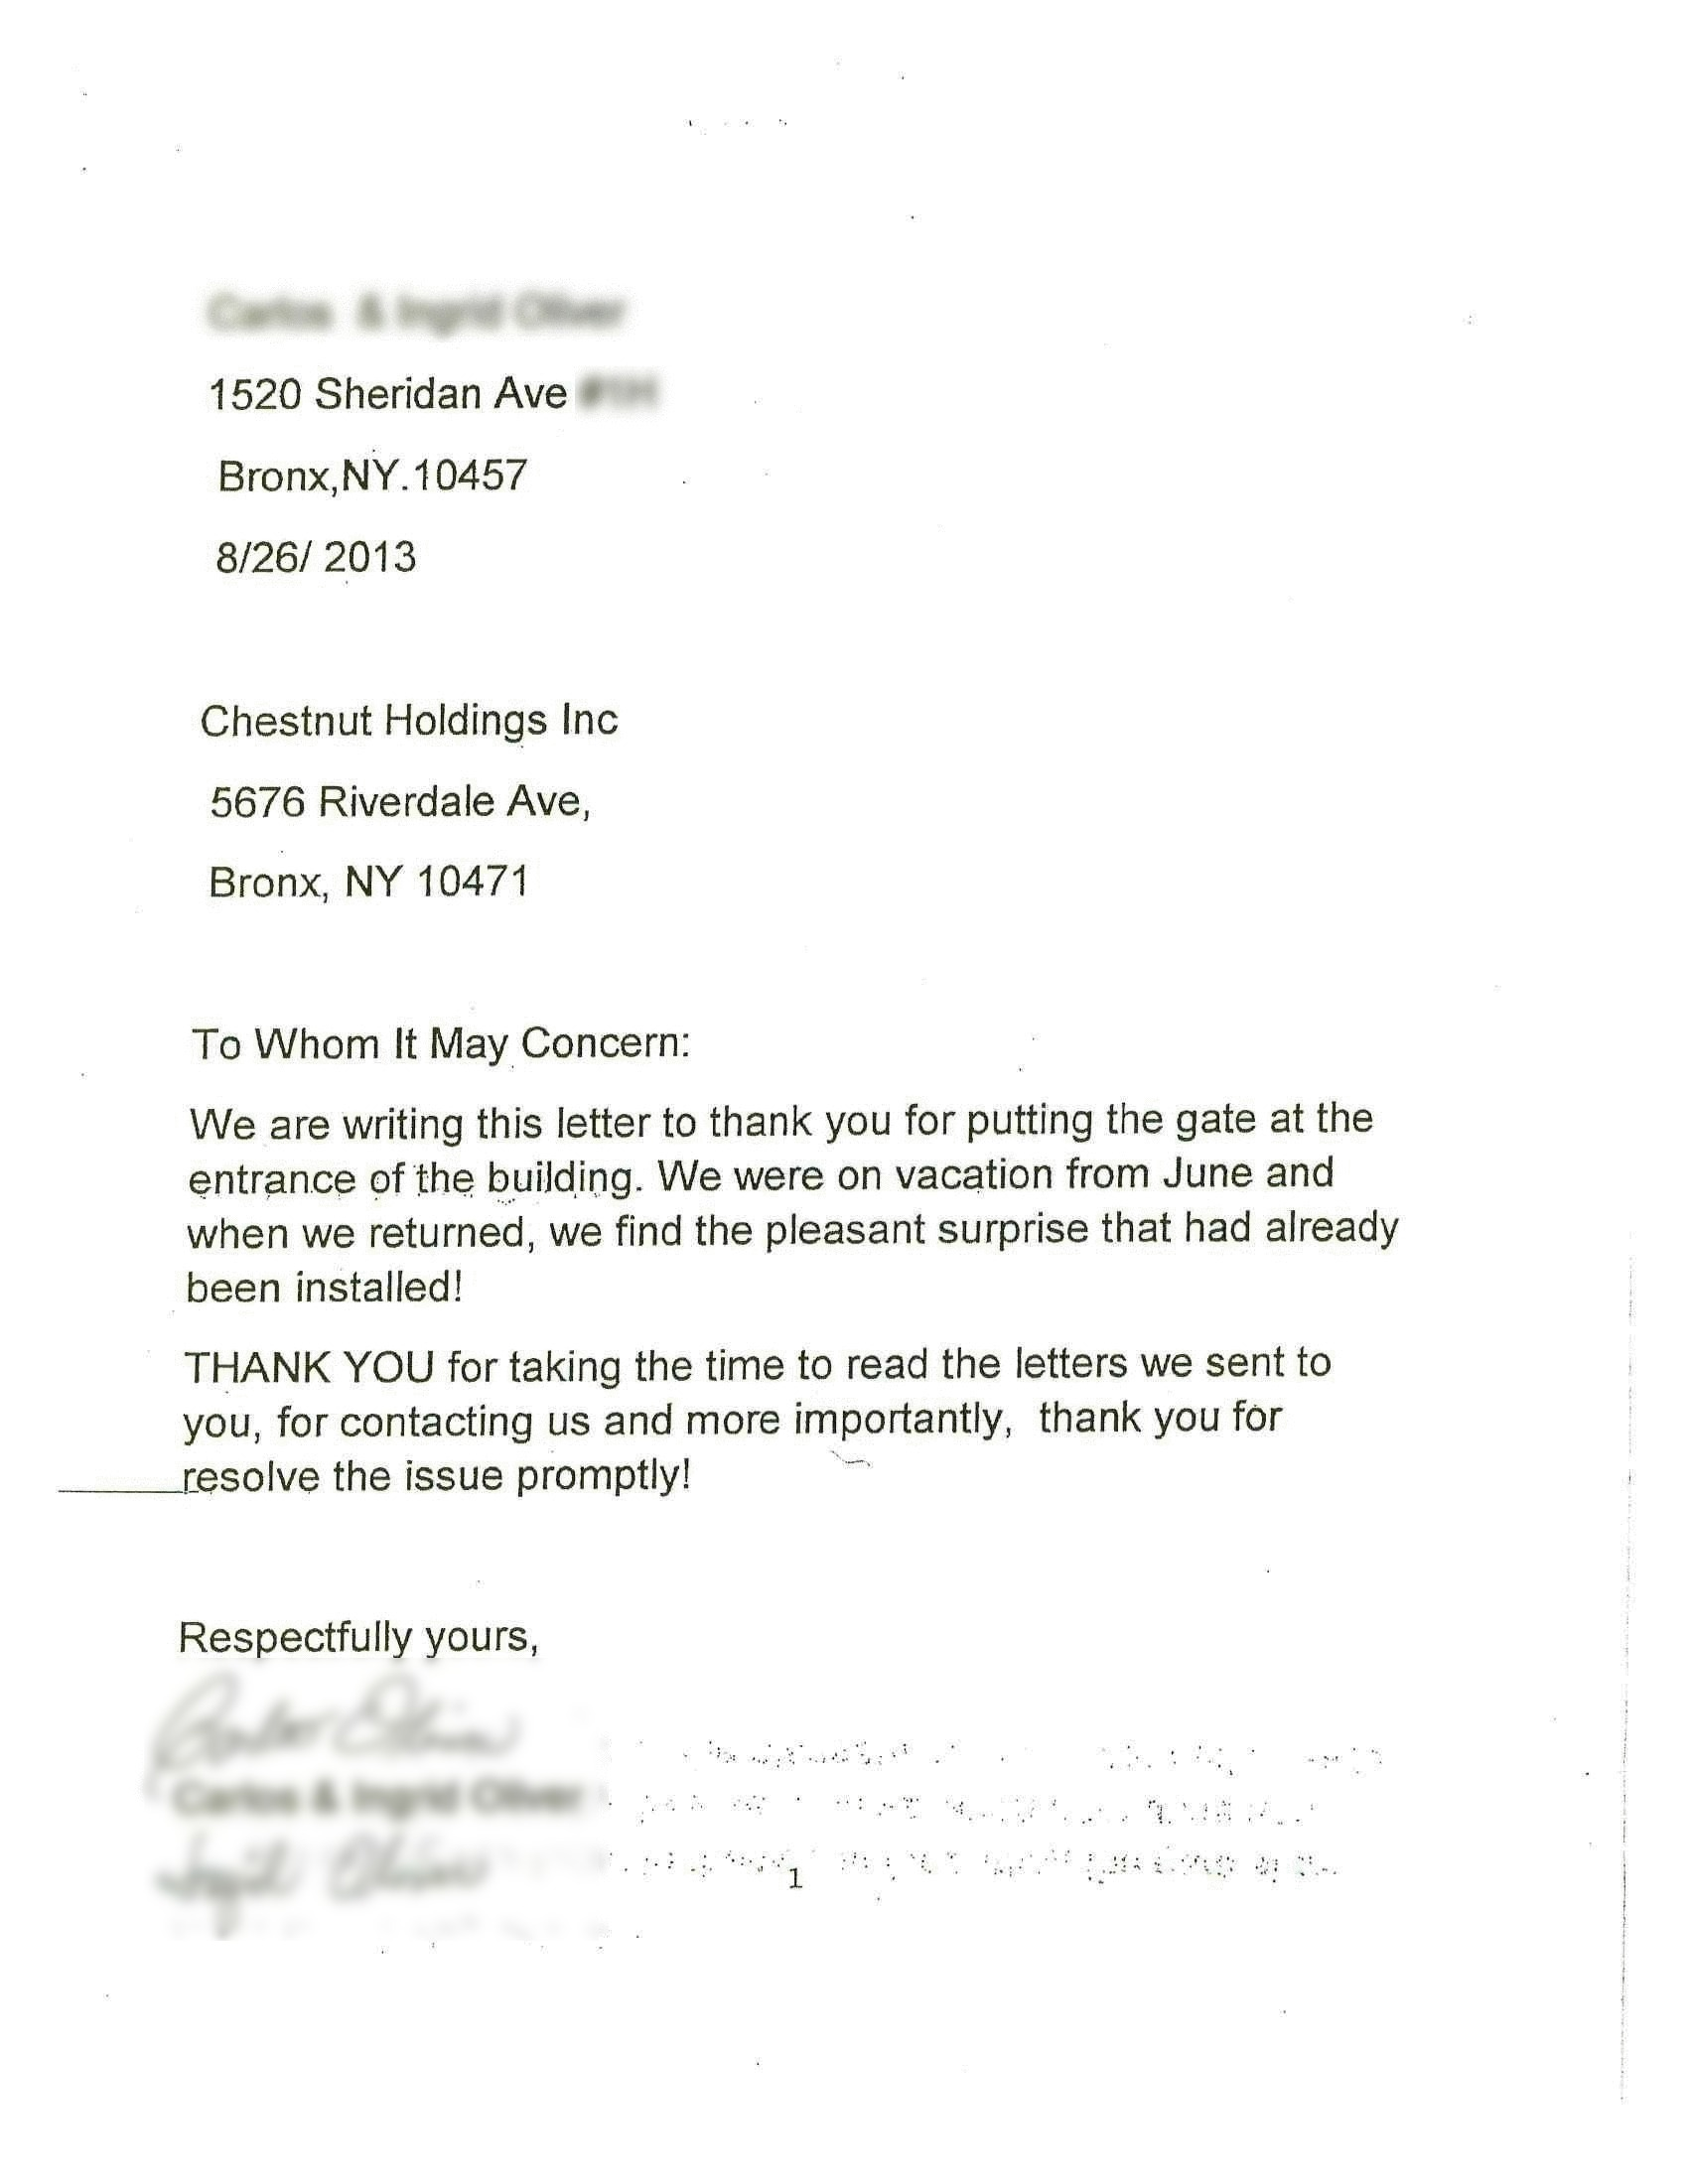 Property Management Letter To Tenants About Parking from chestnutholdings.com